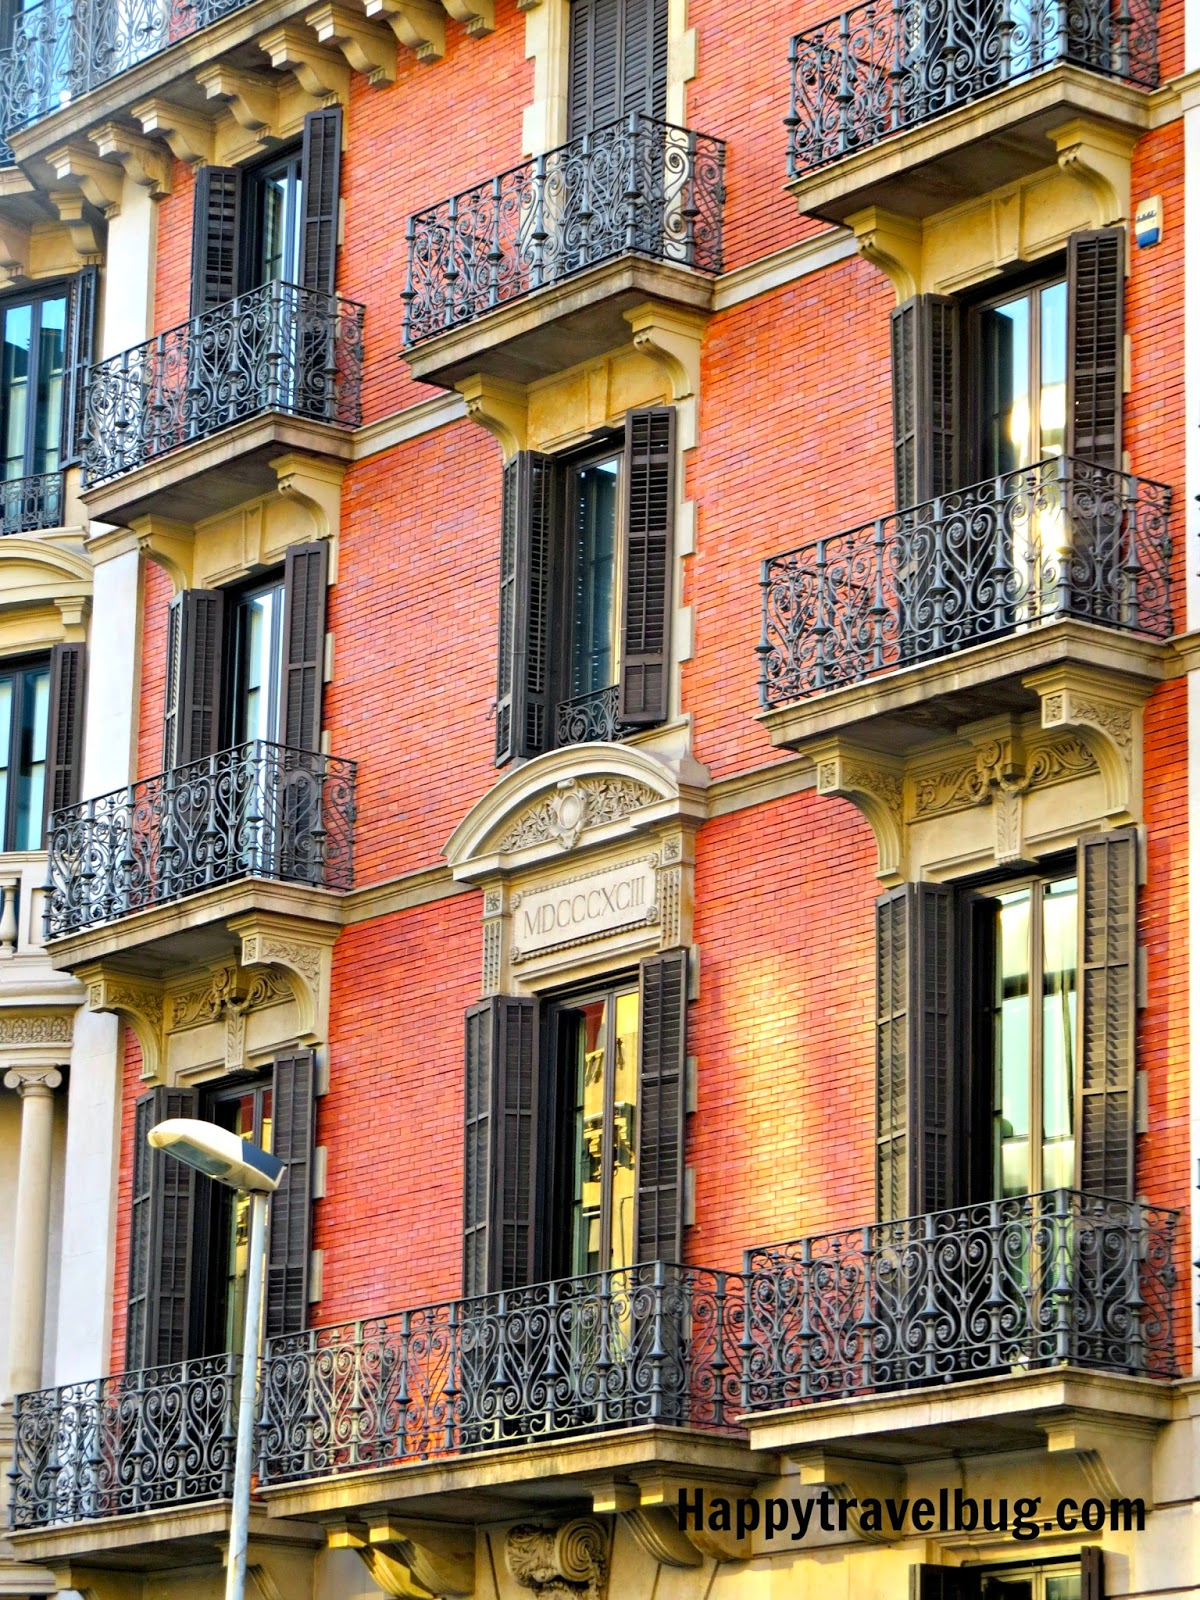 Barcelona, Spain building with balconies